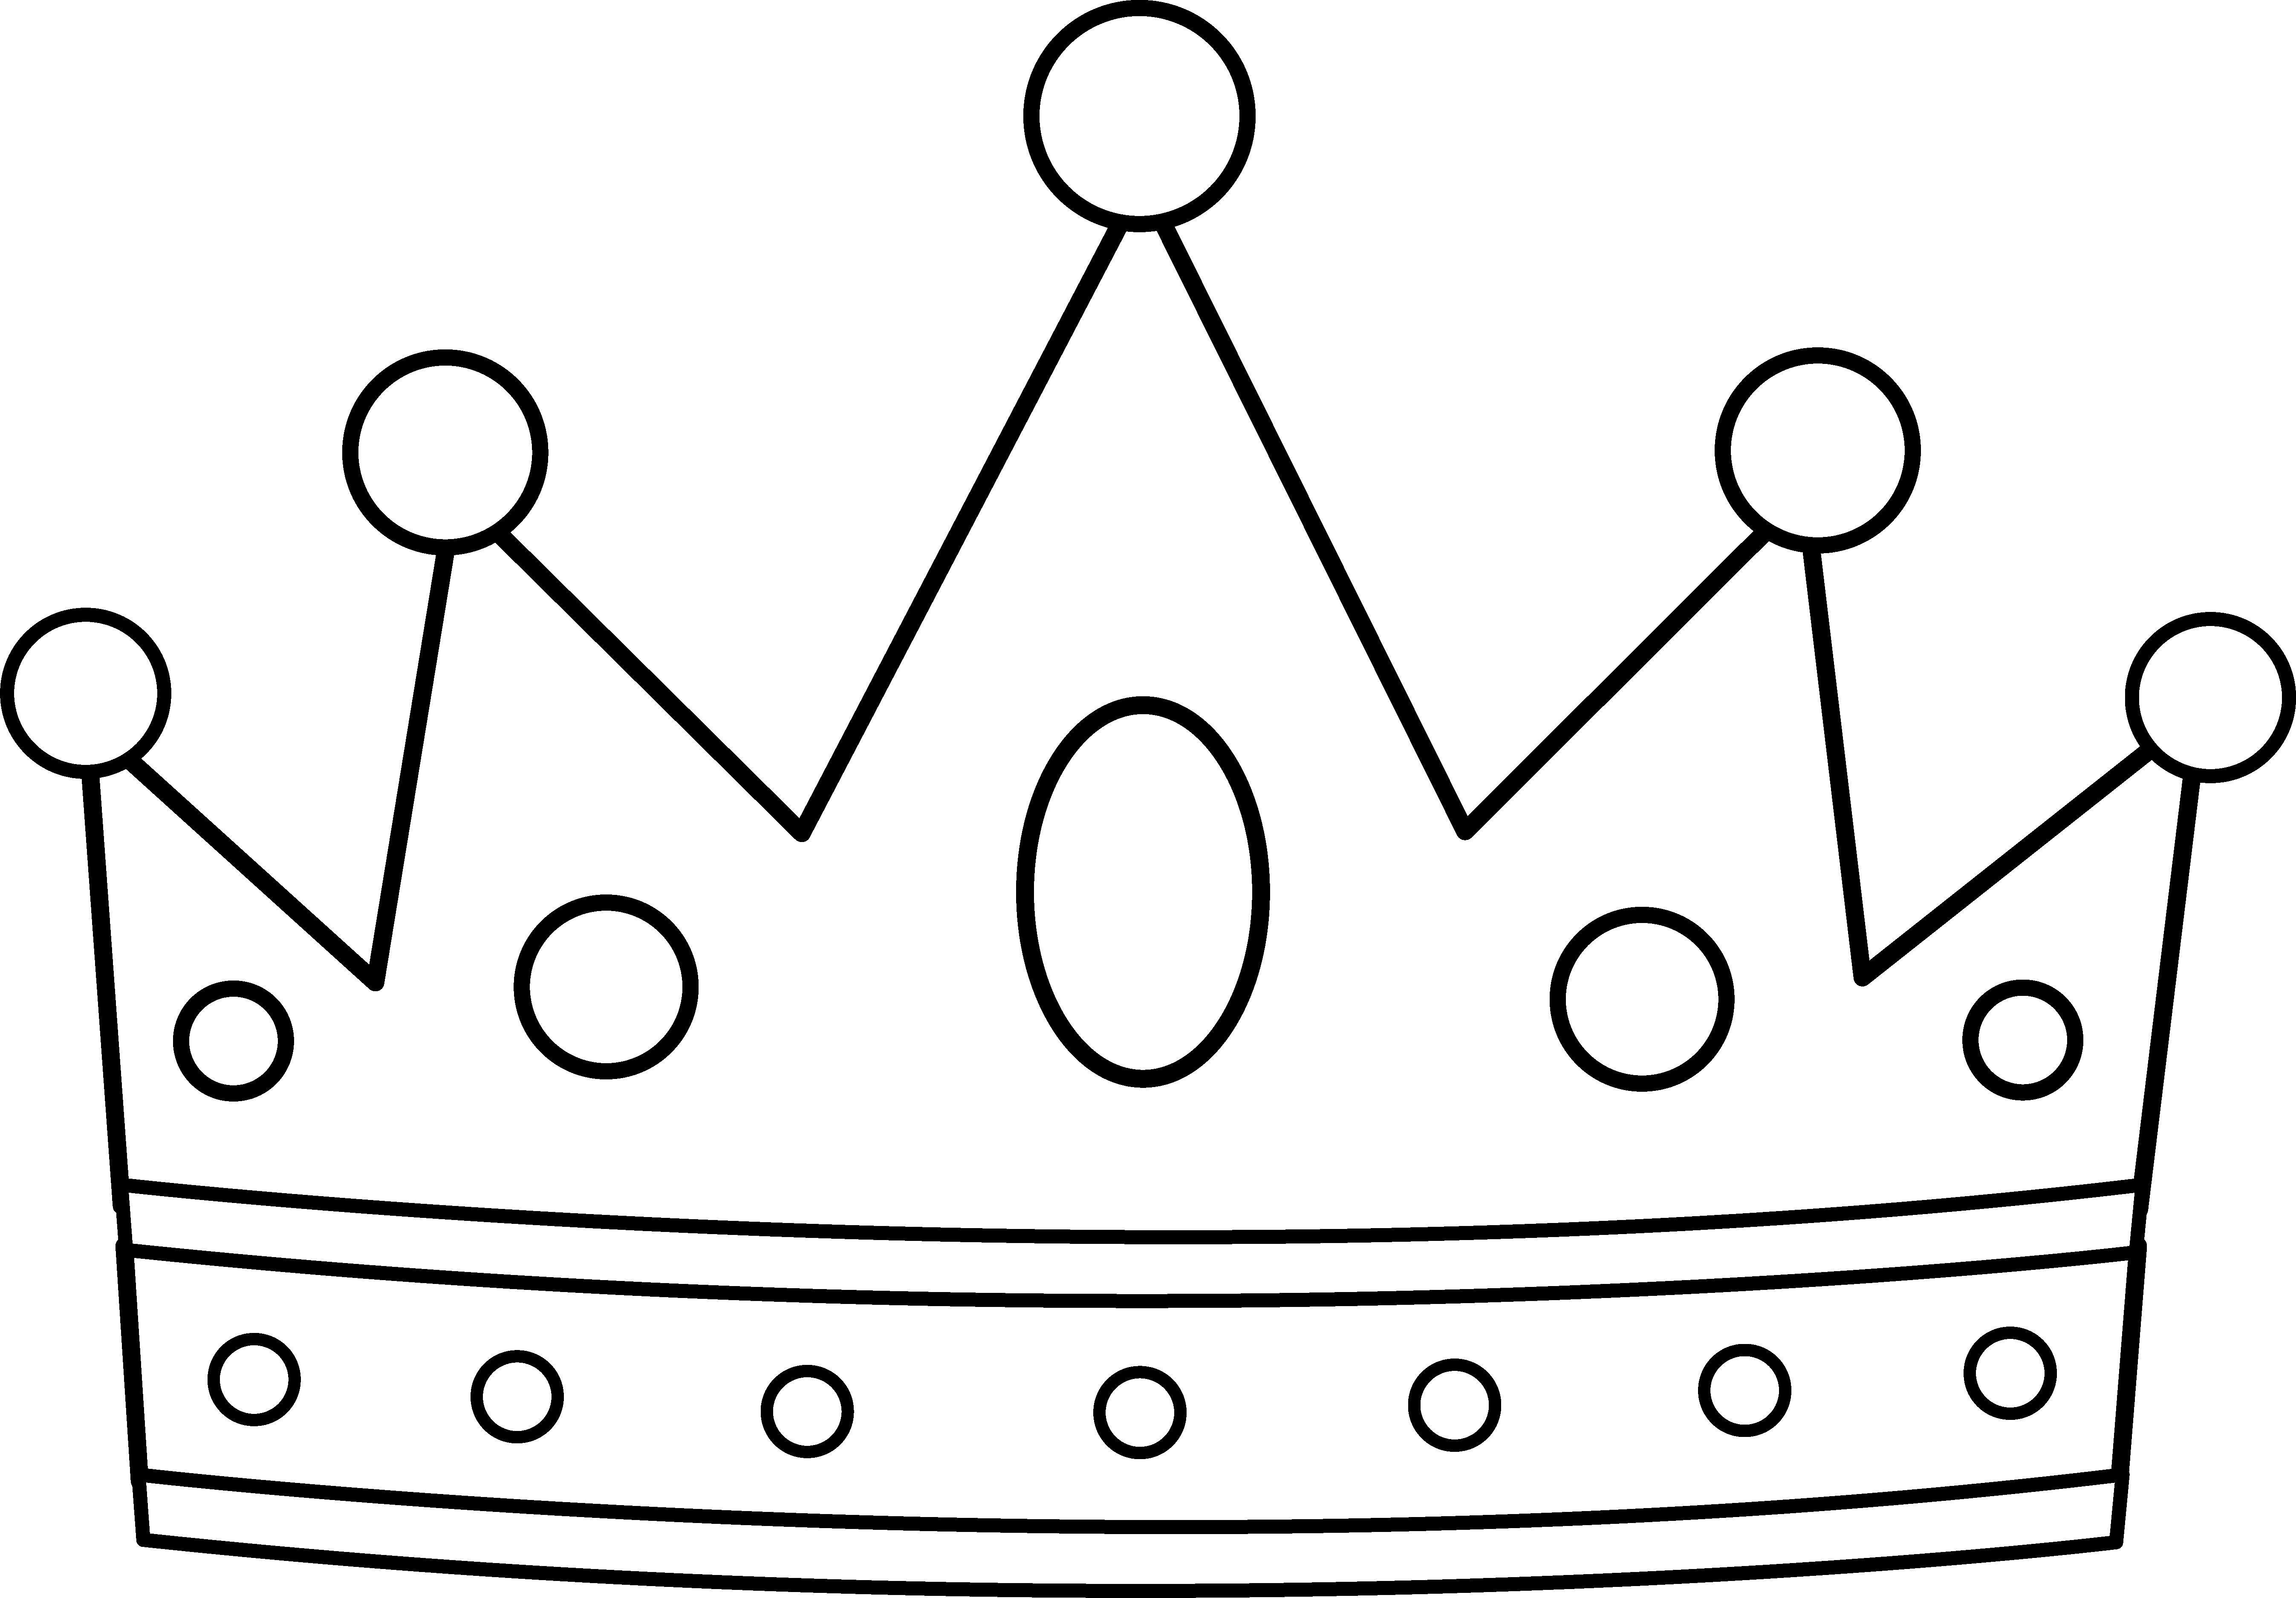 Free coloring pictures of queens - King 20and 20queen 20coloring 20pages